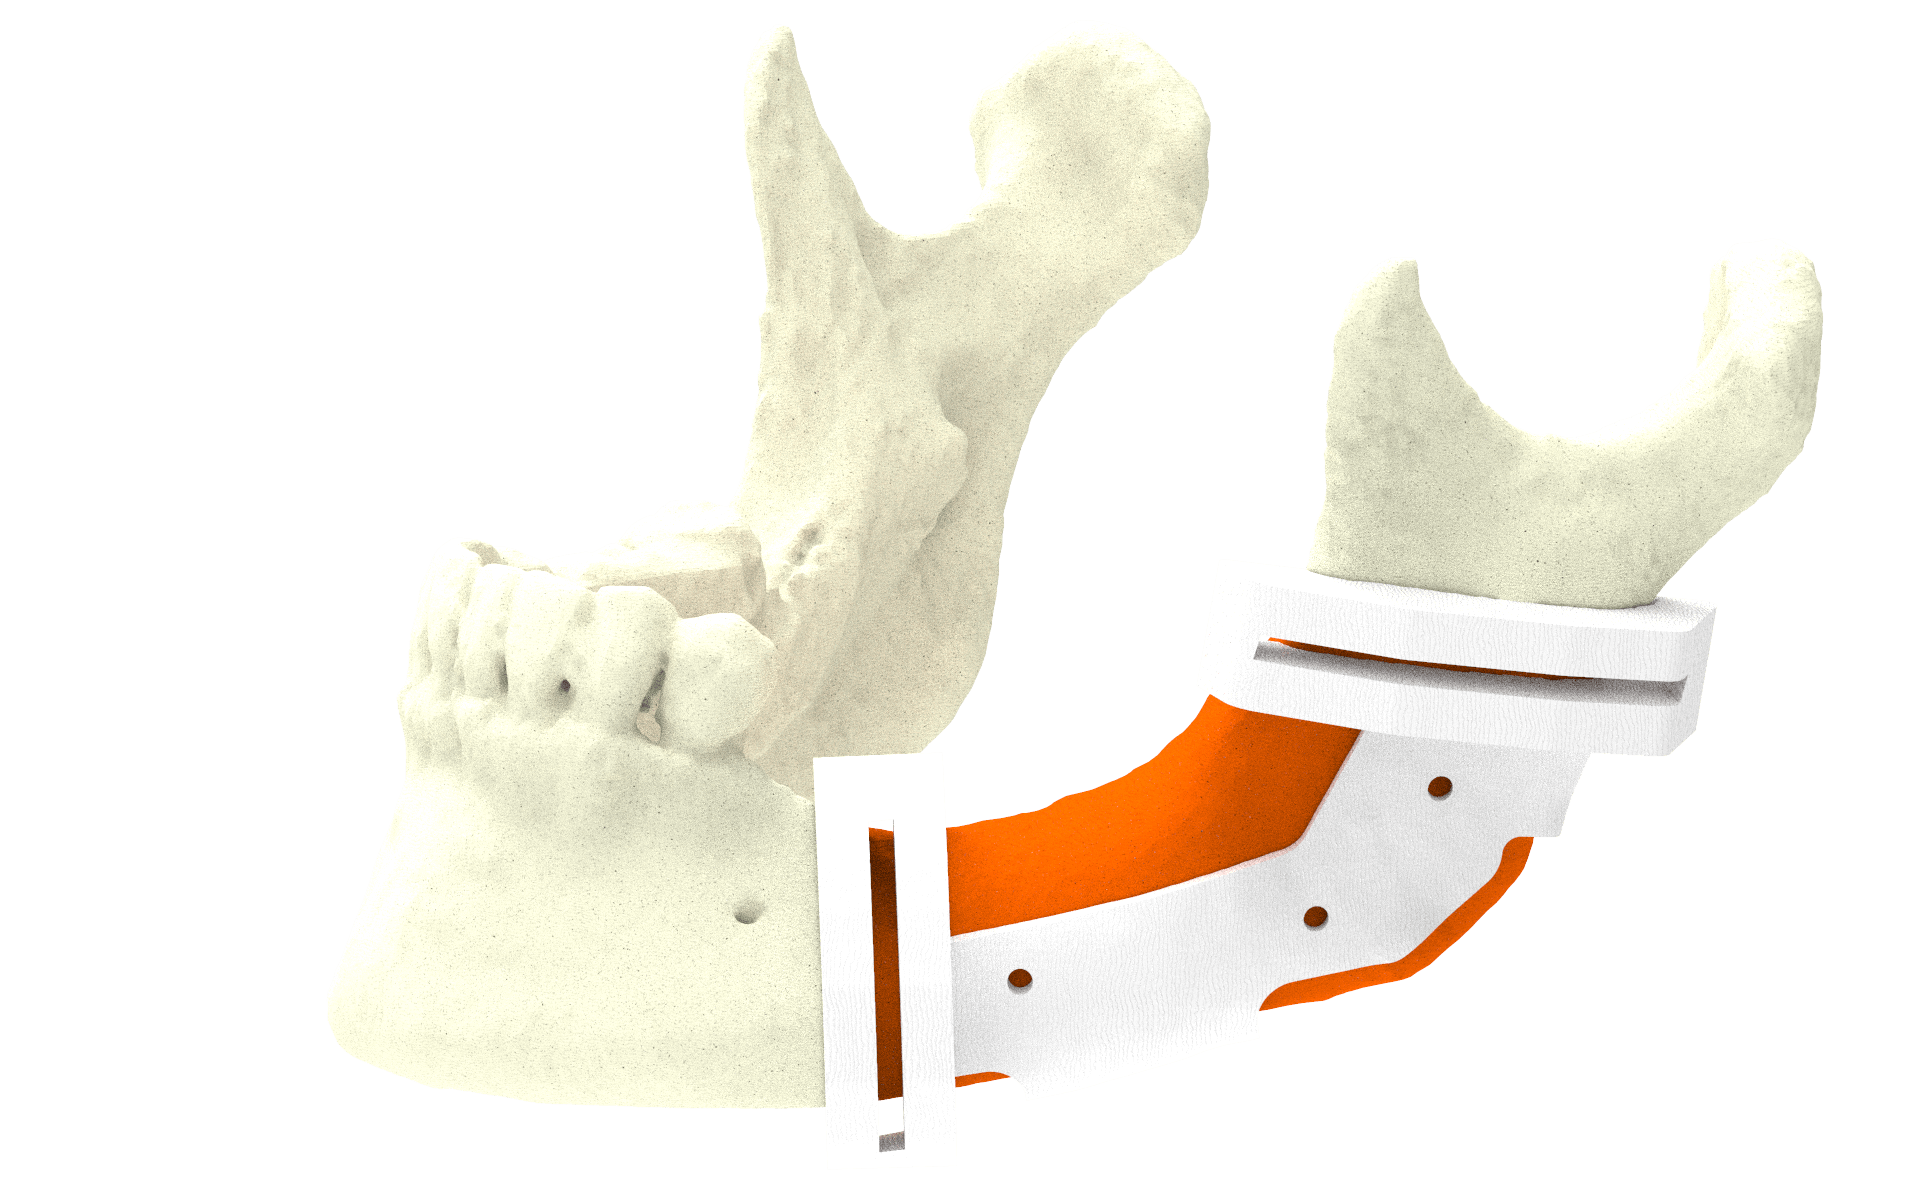 Xilloc Medical B.V. – Mandibular Surgical Guide 1.0